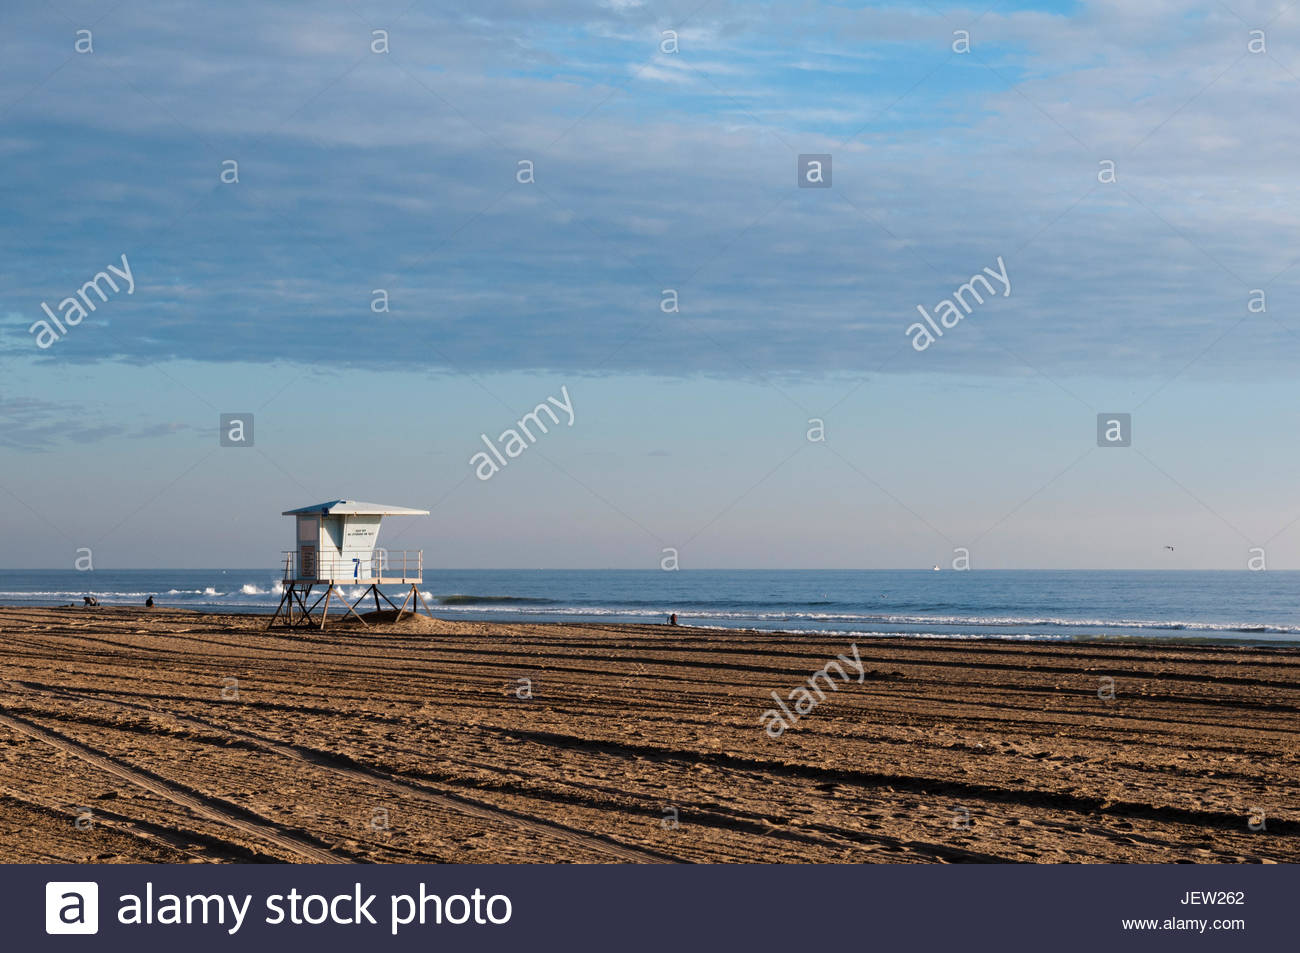 A life guard shack on almost deserted Huntington Beach, on the Pacific Ocean. - Stock Image